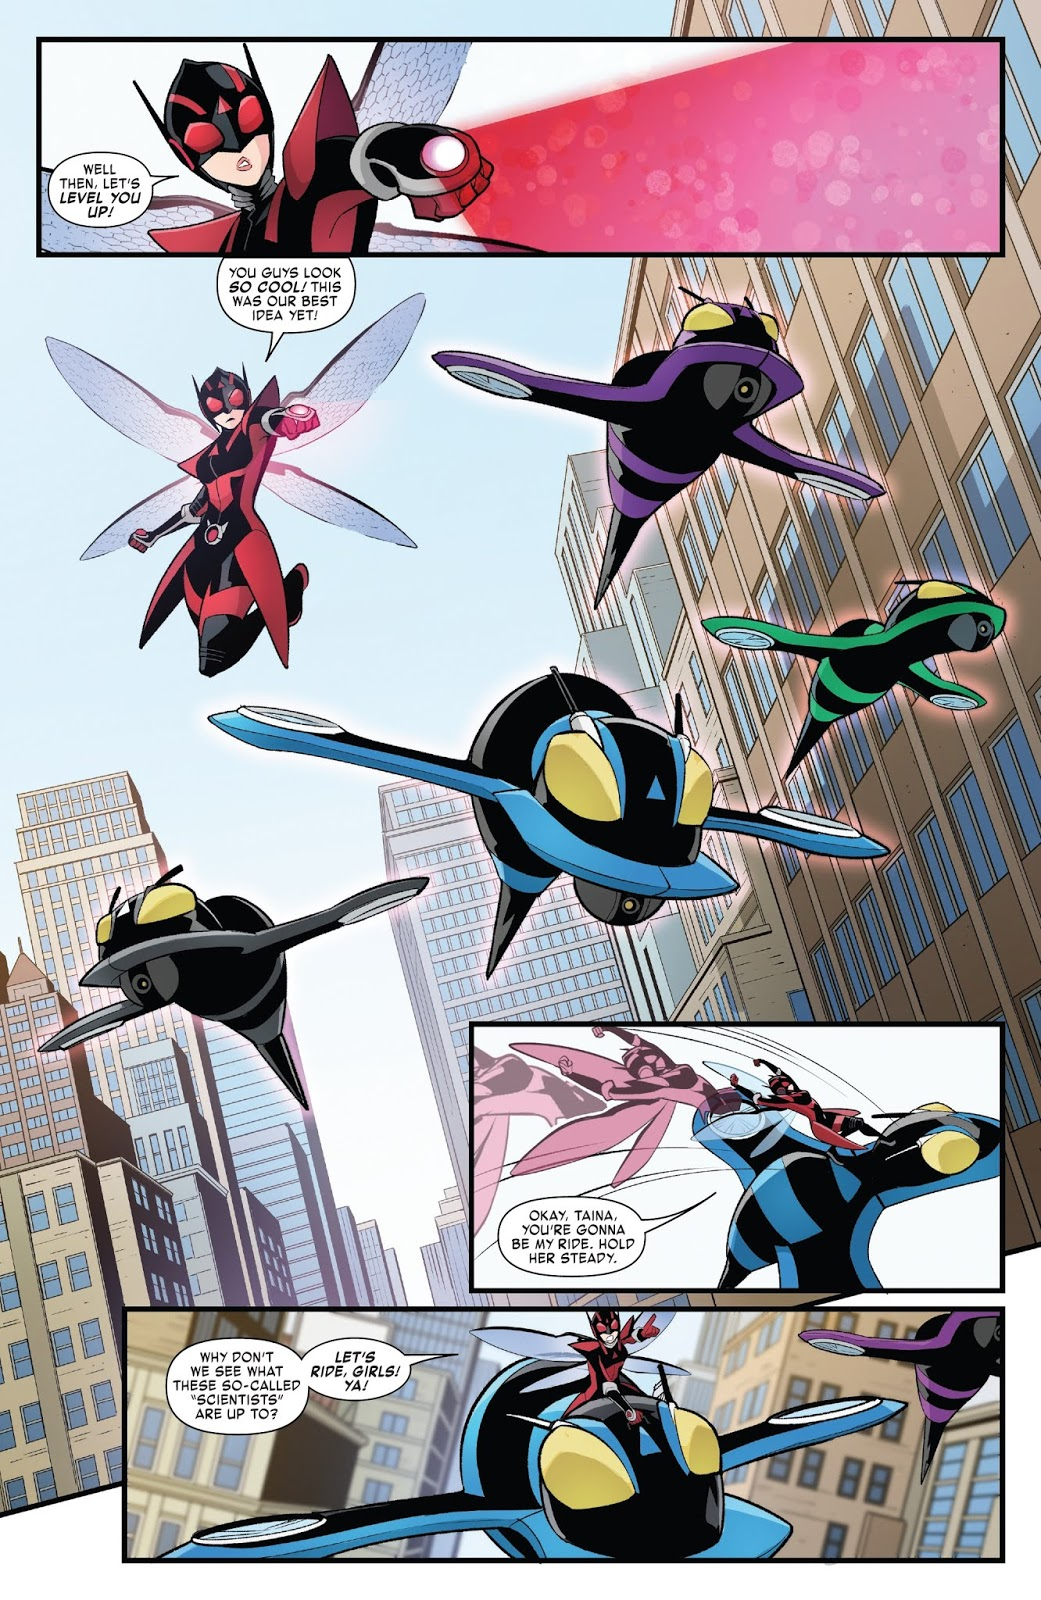 The Unstoppable Wasp Fix Everything review